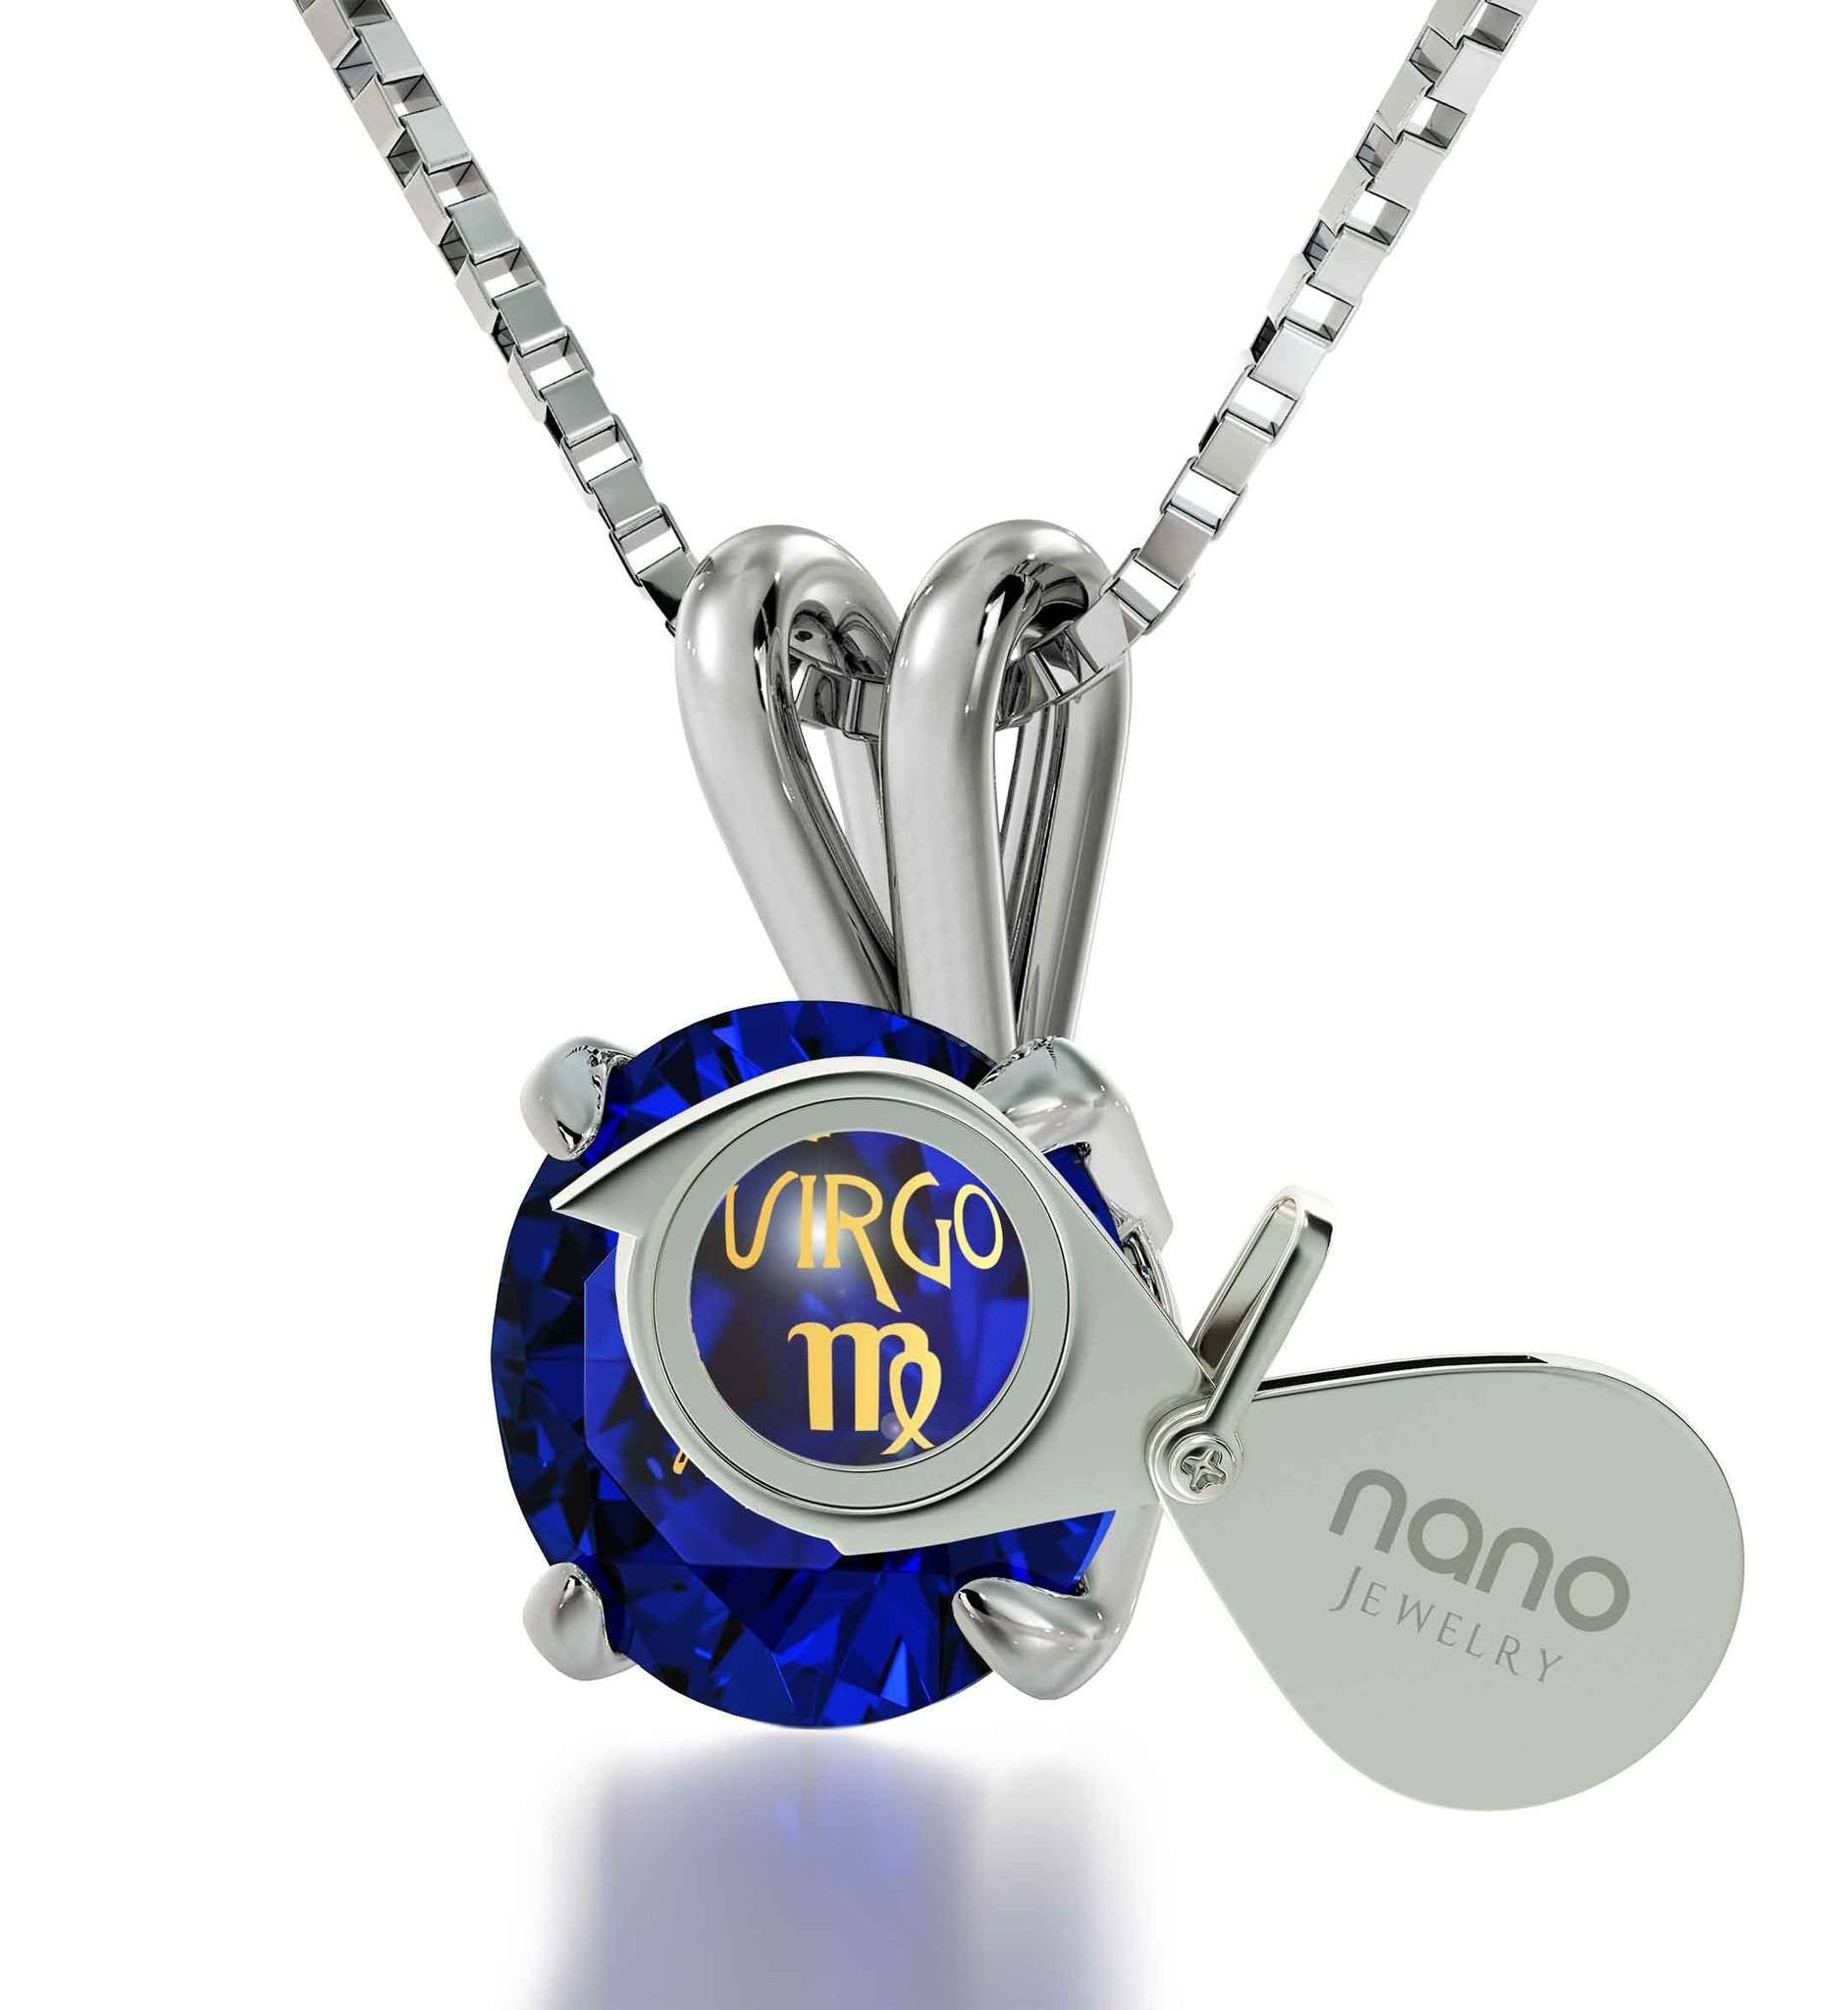 Birthday Gift For Teenage Girl Virgo Sign Engraved On Blue Stone Jewellery Best